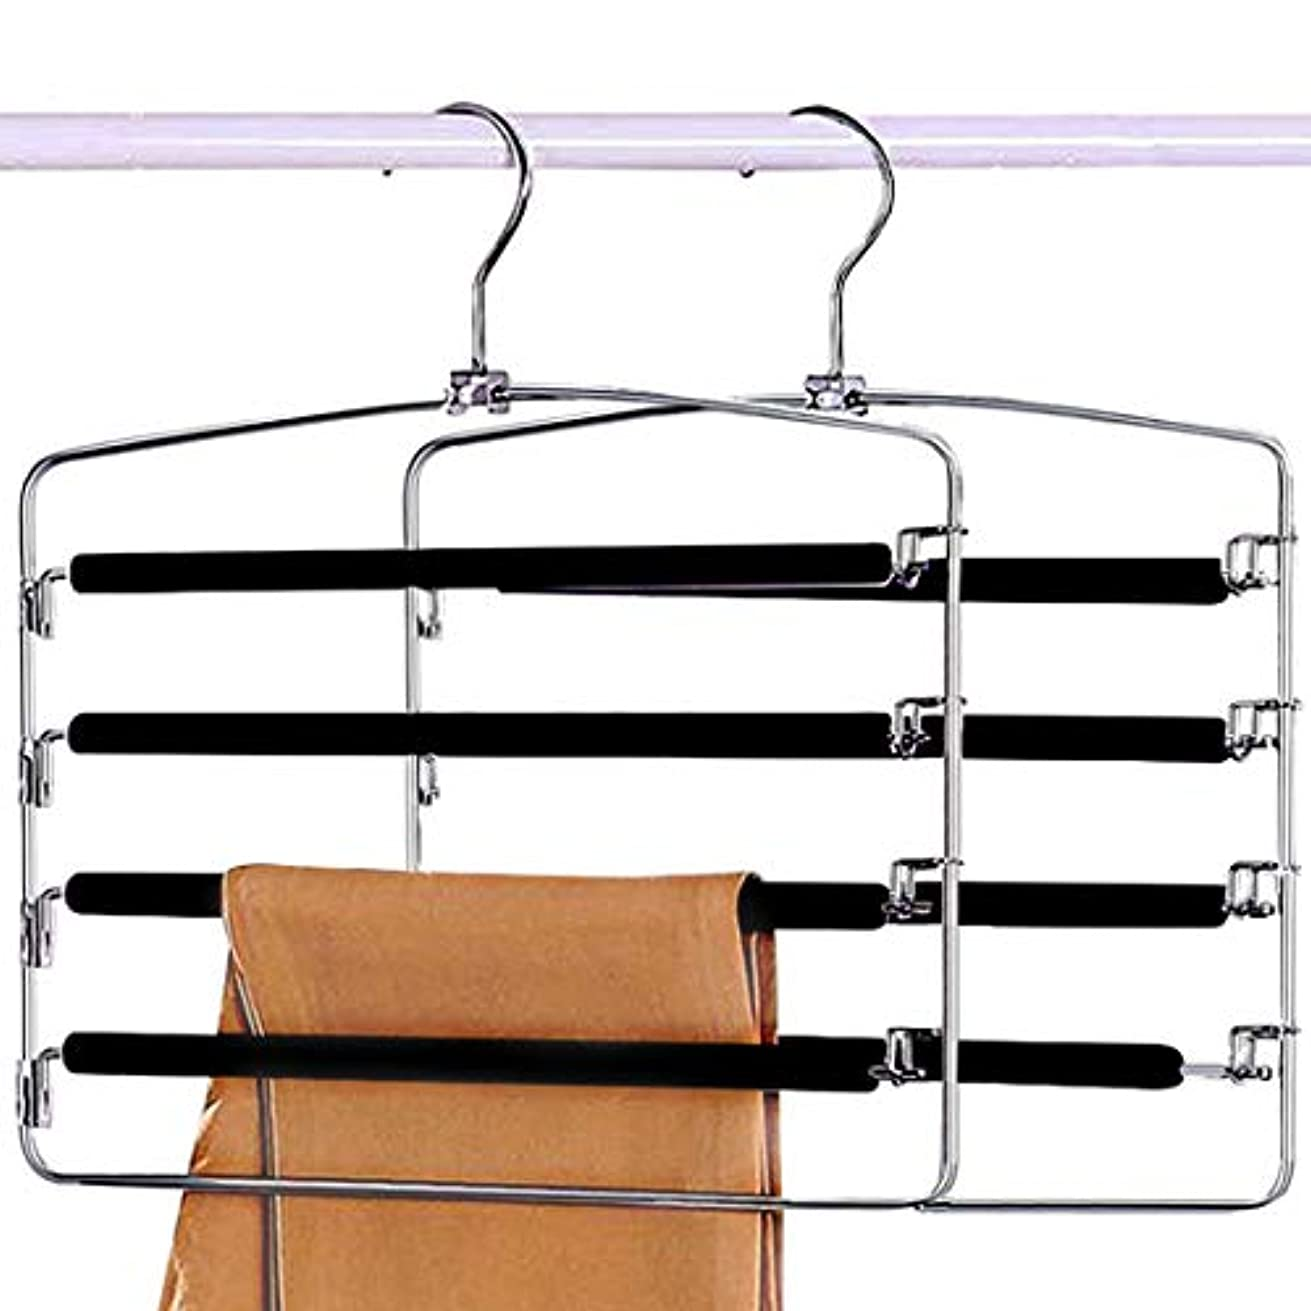 Sunblo Space Saving Pants Hangers 2 Pack, Strong and Durable Anti-Rust Metal Slack Hangers, Multi Layers Swing Arm Pants Hangers, Non-Slip Foam Padded for Trousers, Jeans Etc